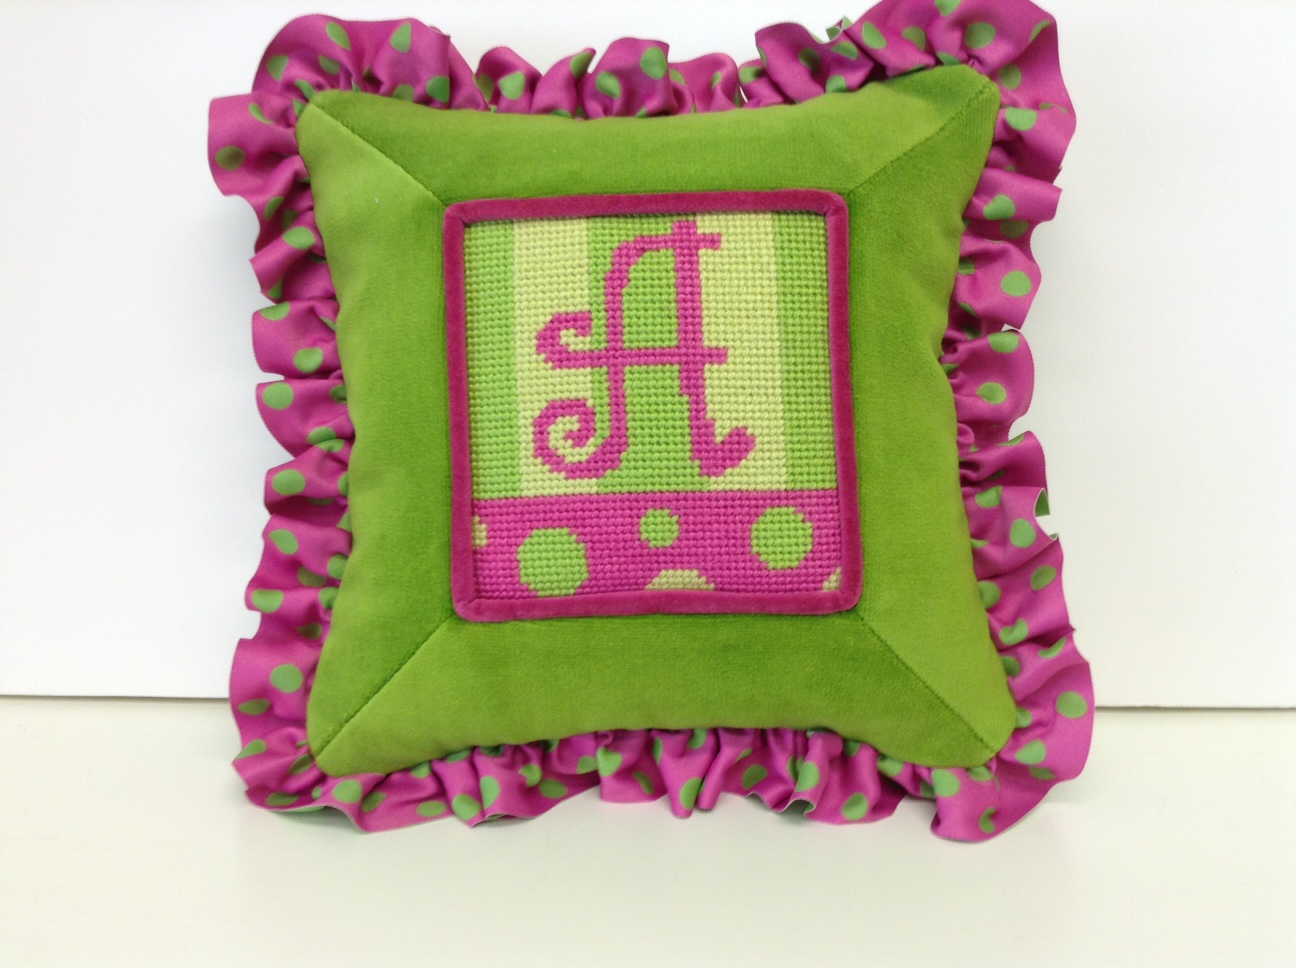 Needlepoint A monogram